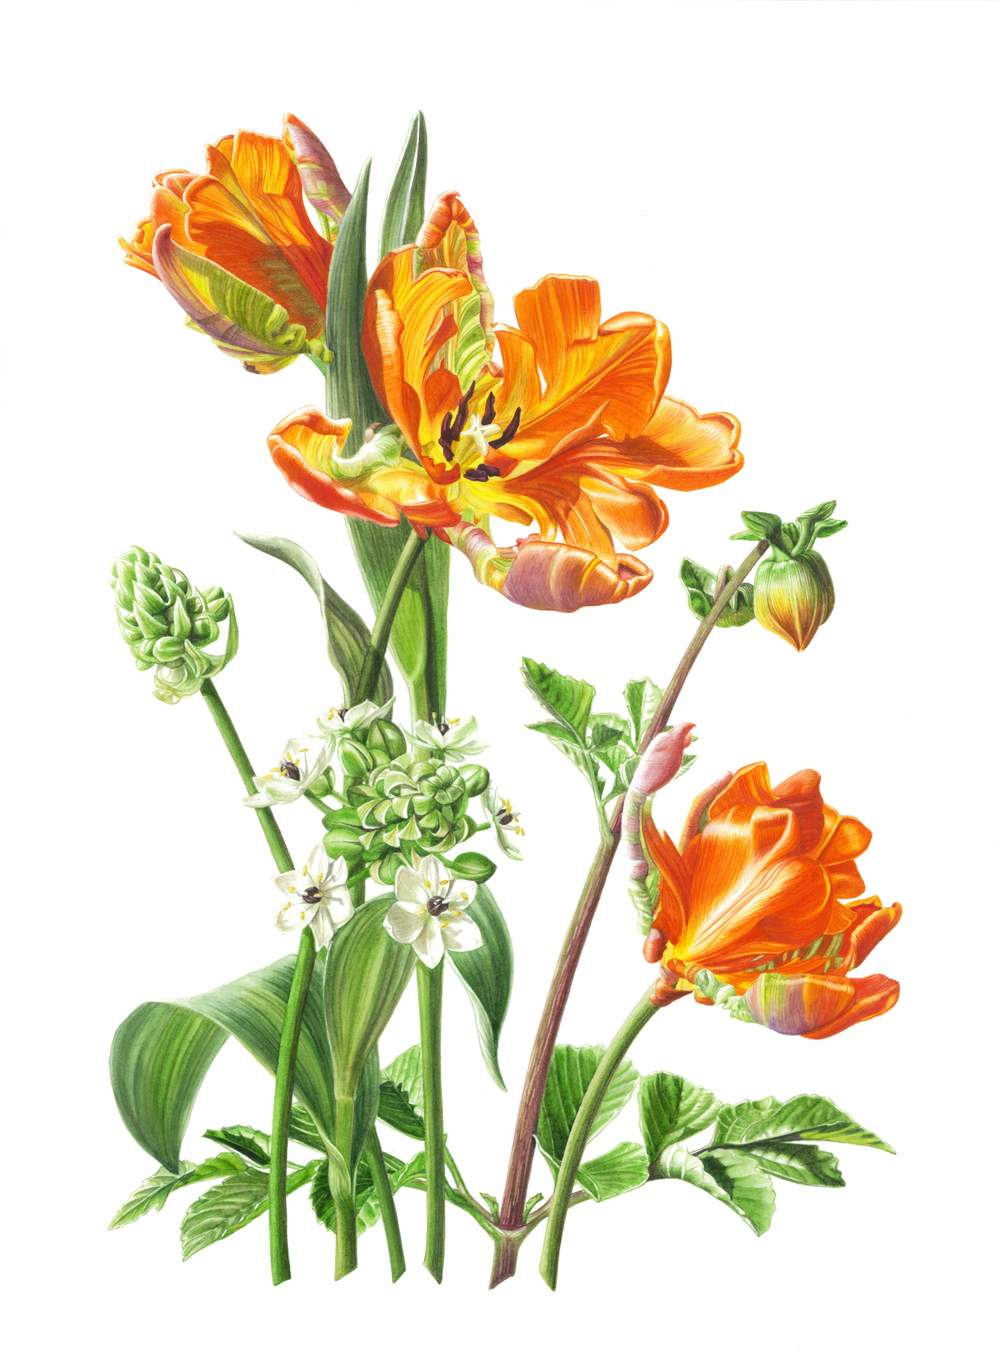 "Tulipa 'Rococo'  - Parrot Tulip Rococo Ornithogalum arabicum  - Arabian Star Flower Dahila x hybrida var. unknown  -Miniature Orange Dahila Watercolour 11"" x 16"""